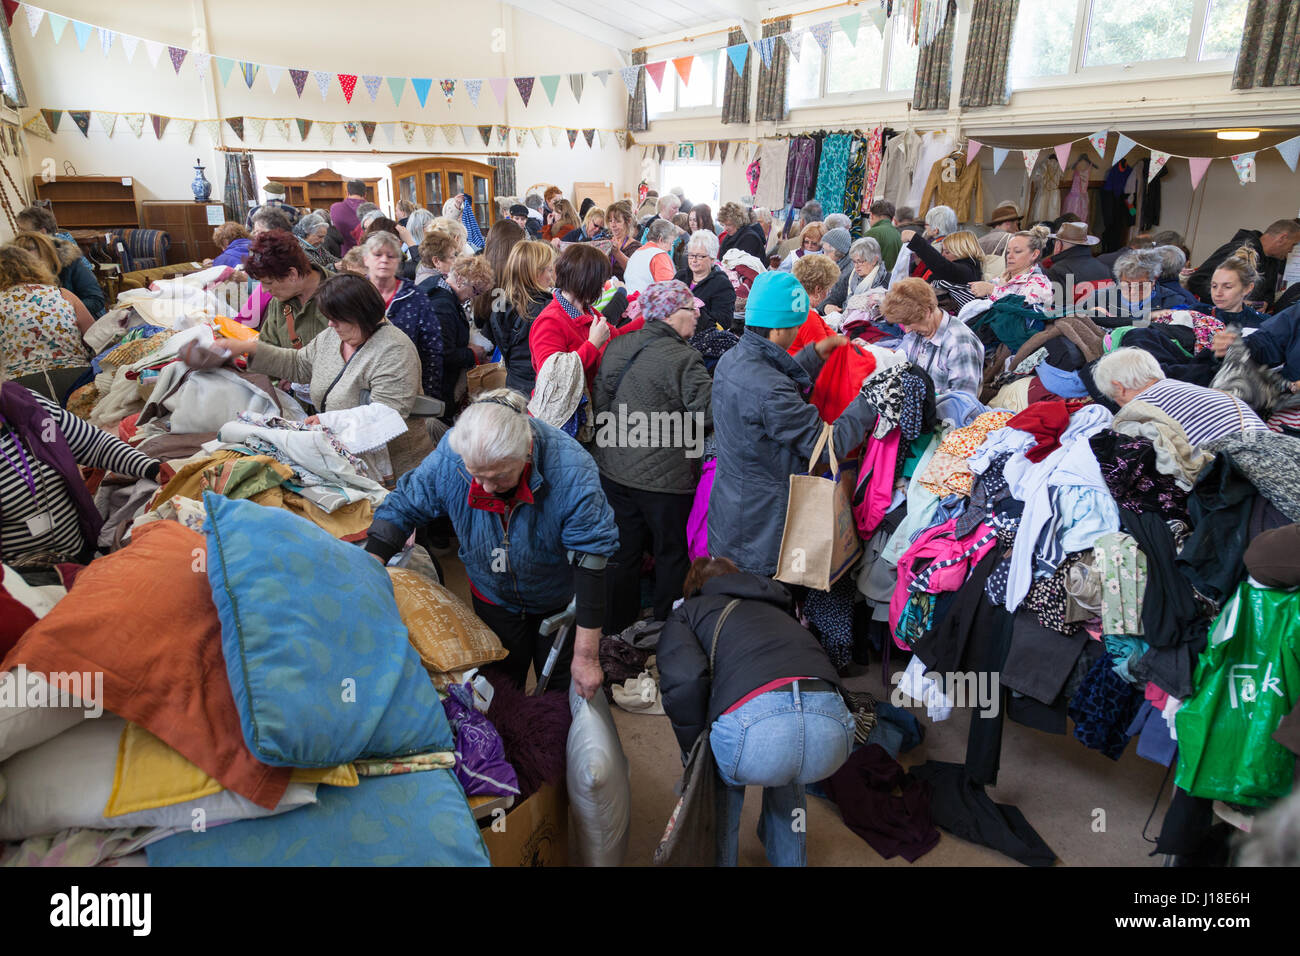 jumble sale, village hall, hamstreet, ashford, kent, uk Stock Photo